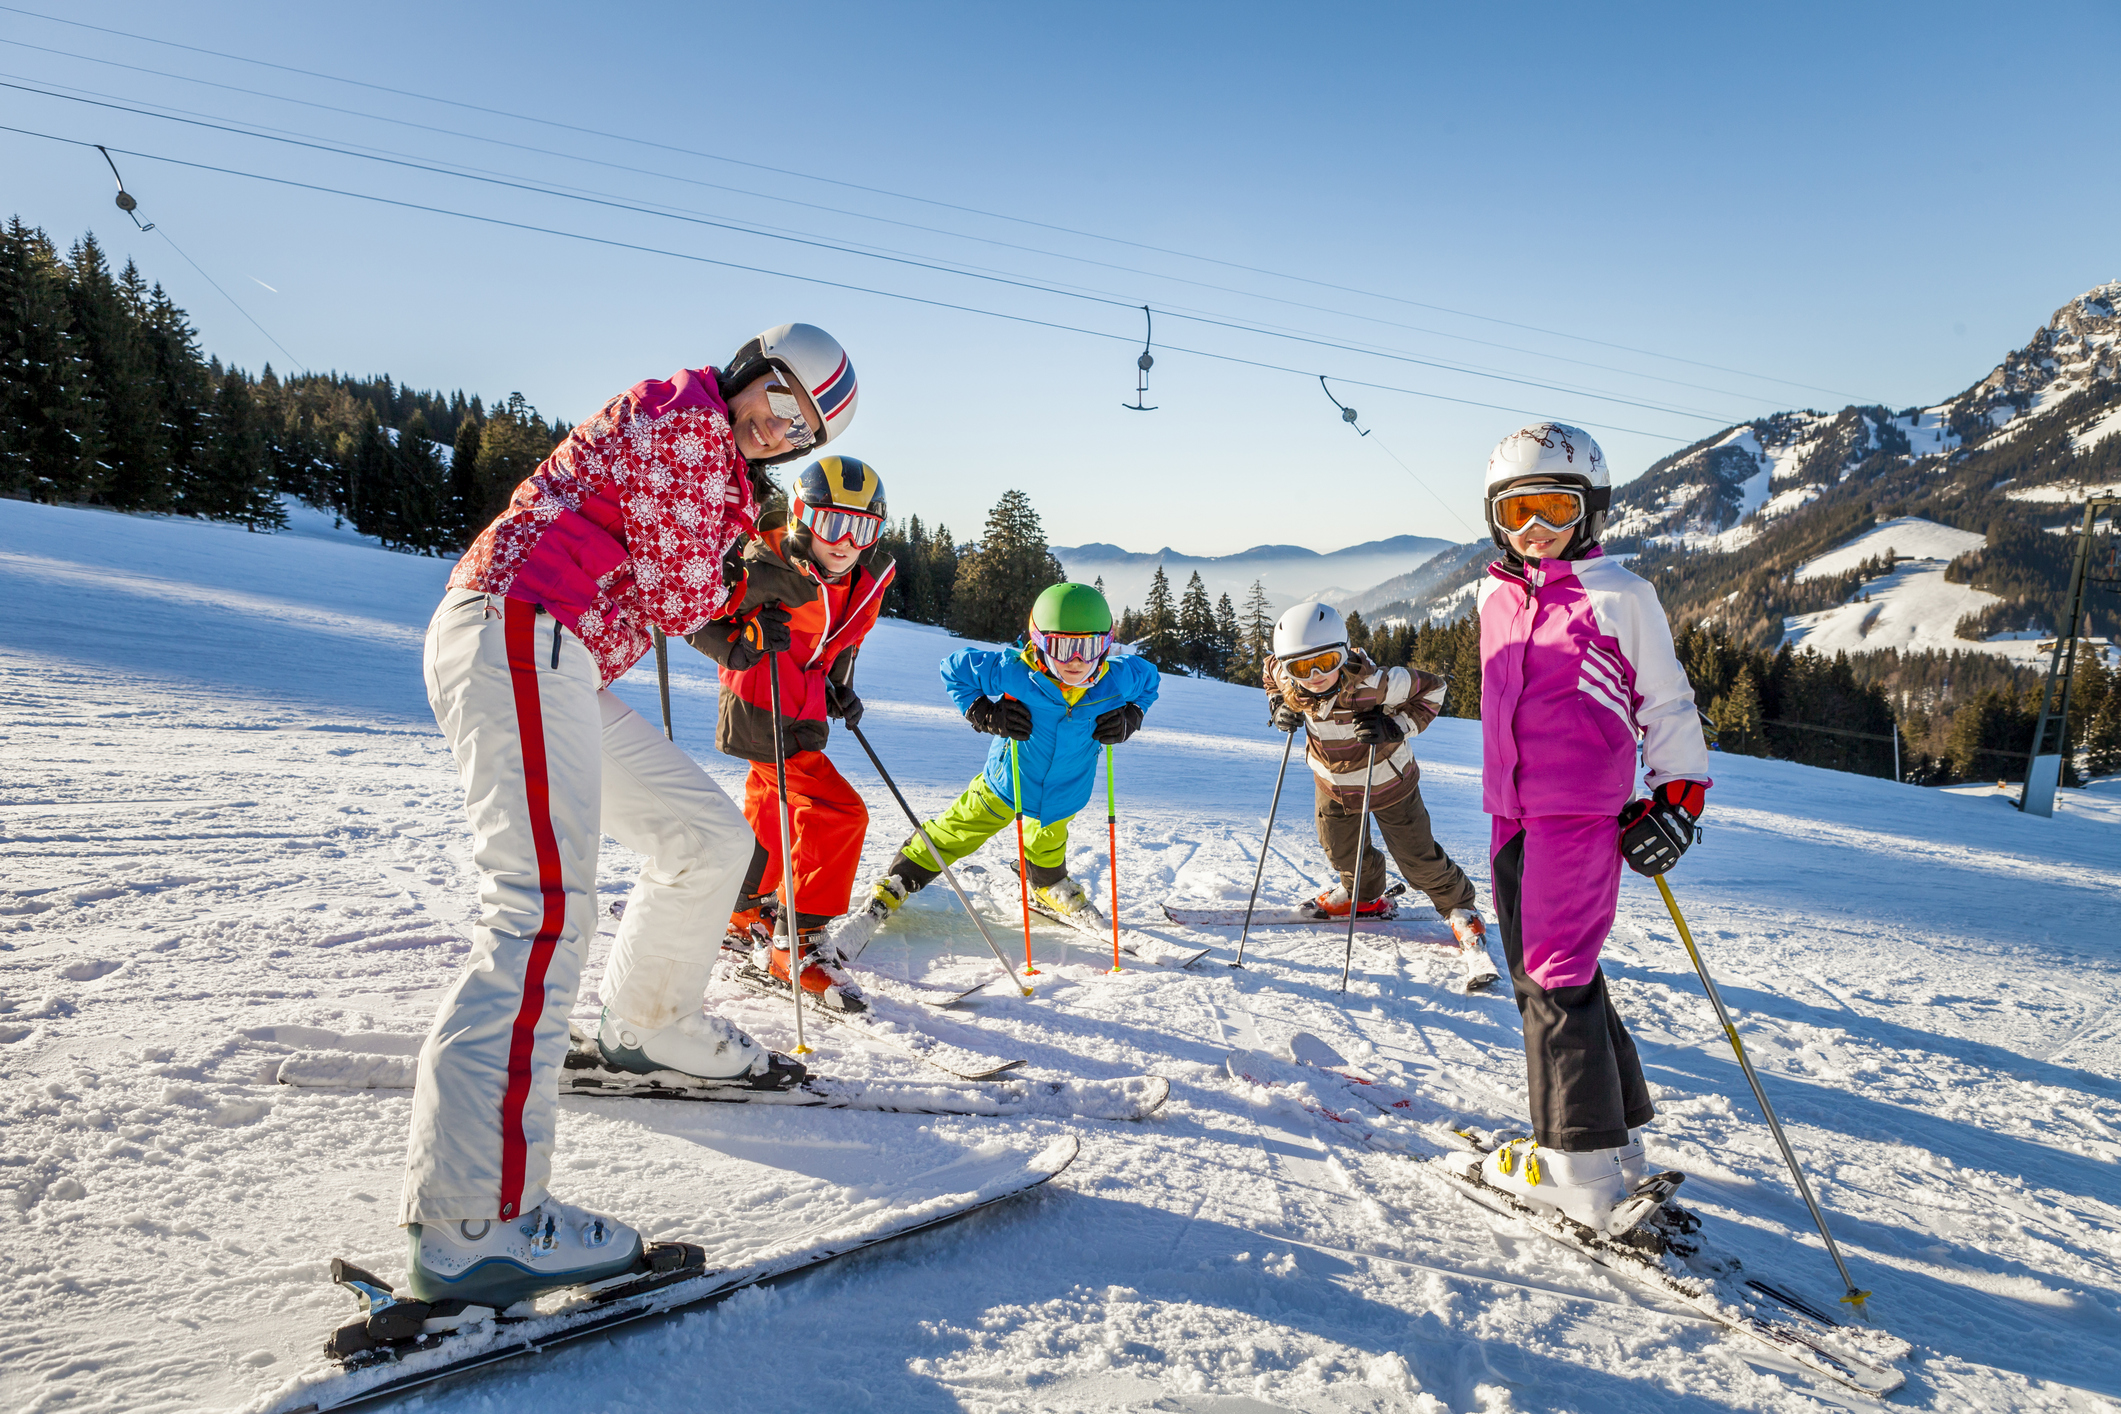 Collectifs ski  6,12 ans / Ski Group 6 to 12 years old (11h -13h)